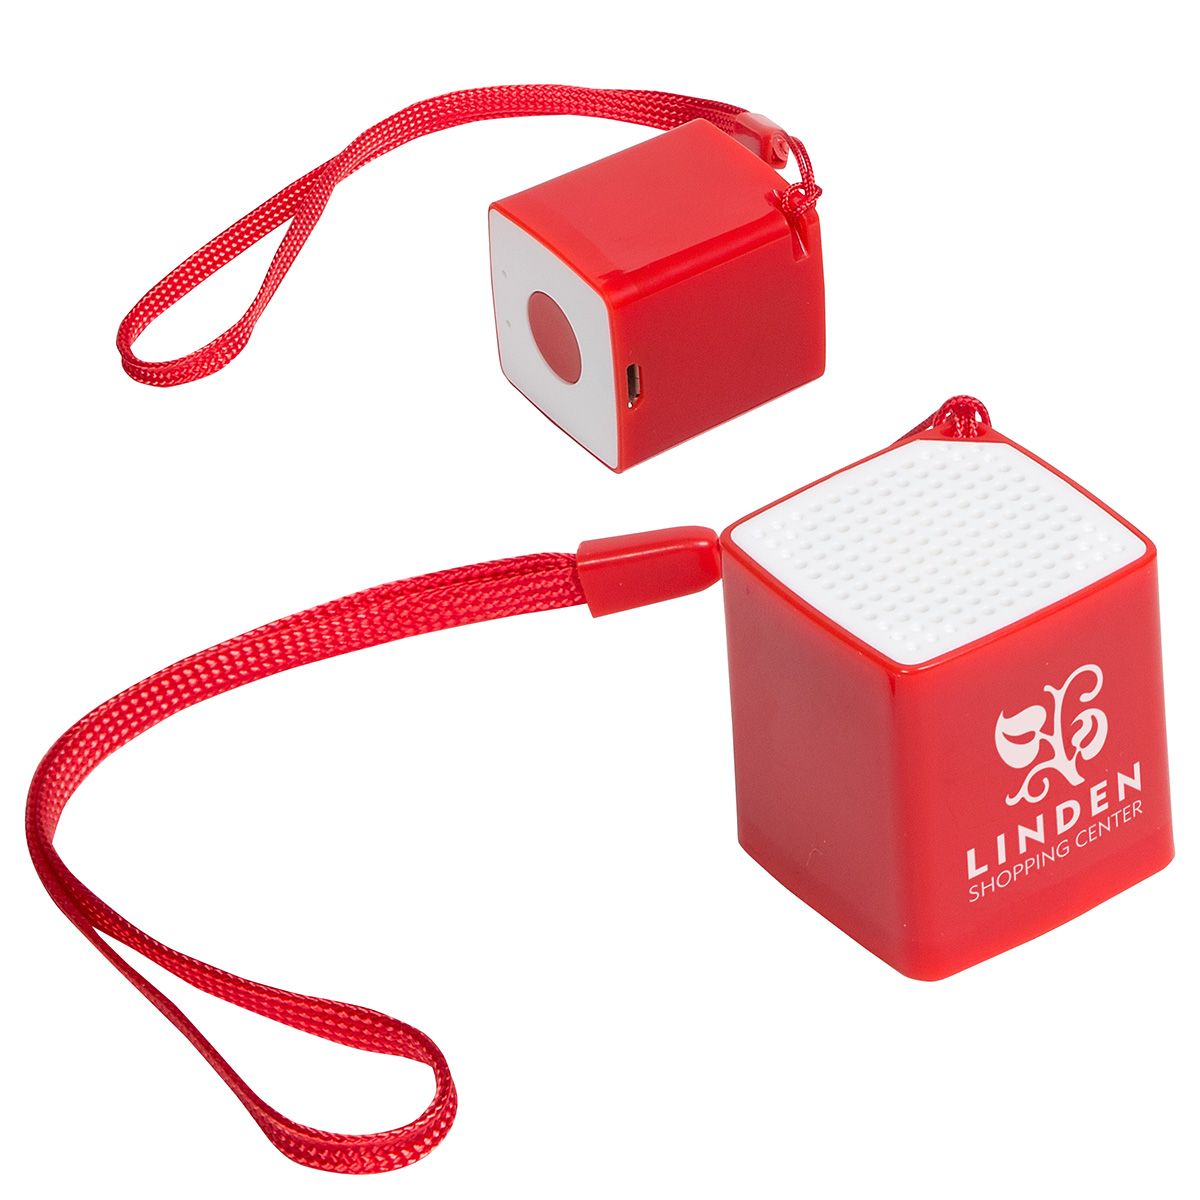 Wireless Mini Cube Speaker with Selfie Button & Mic, ESP-MC16, 1 Colour Imprint